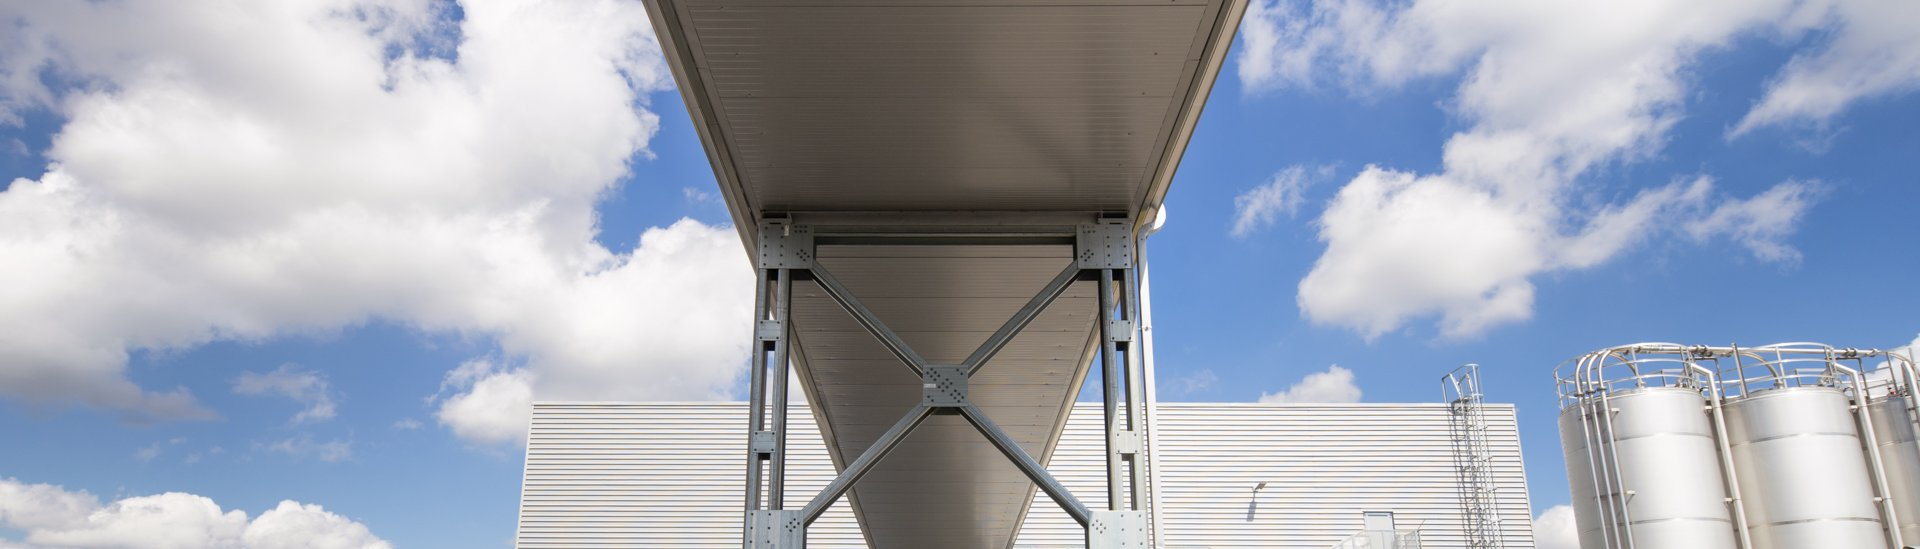 Steel buildings technical information, CZ0741 Rimowa bridge